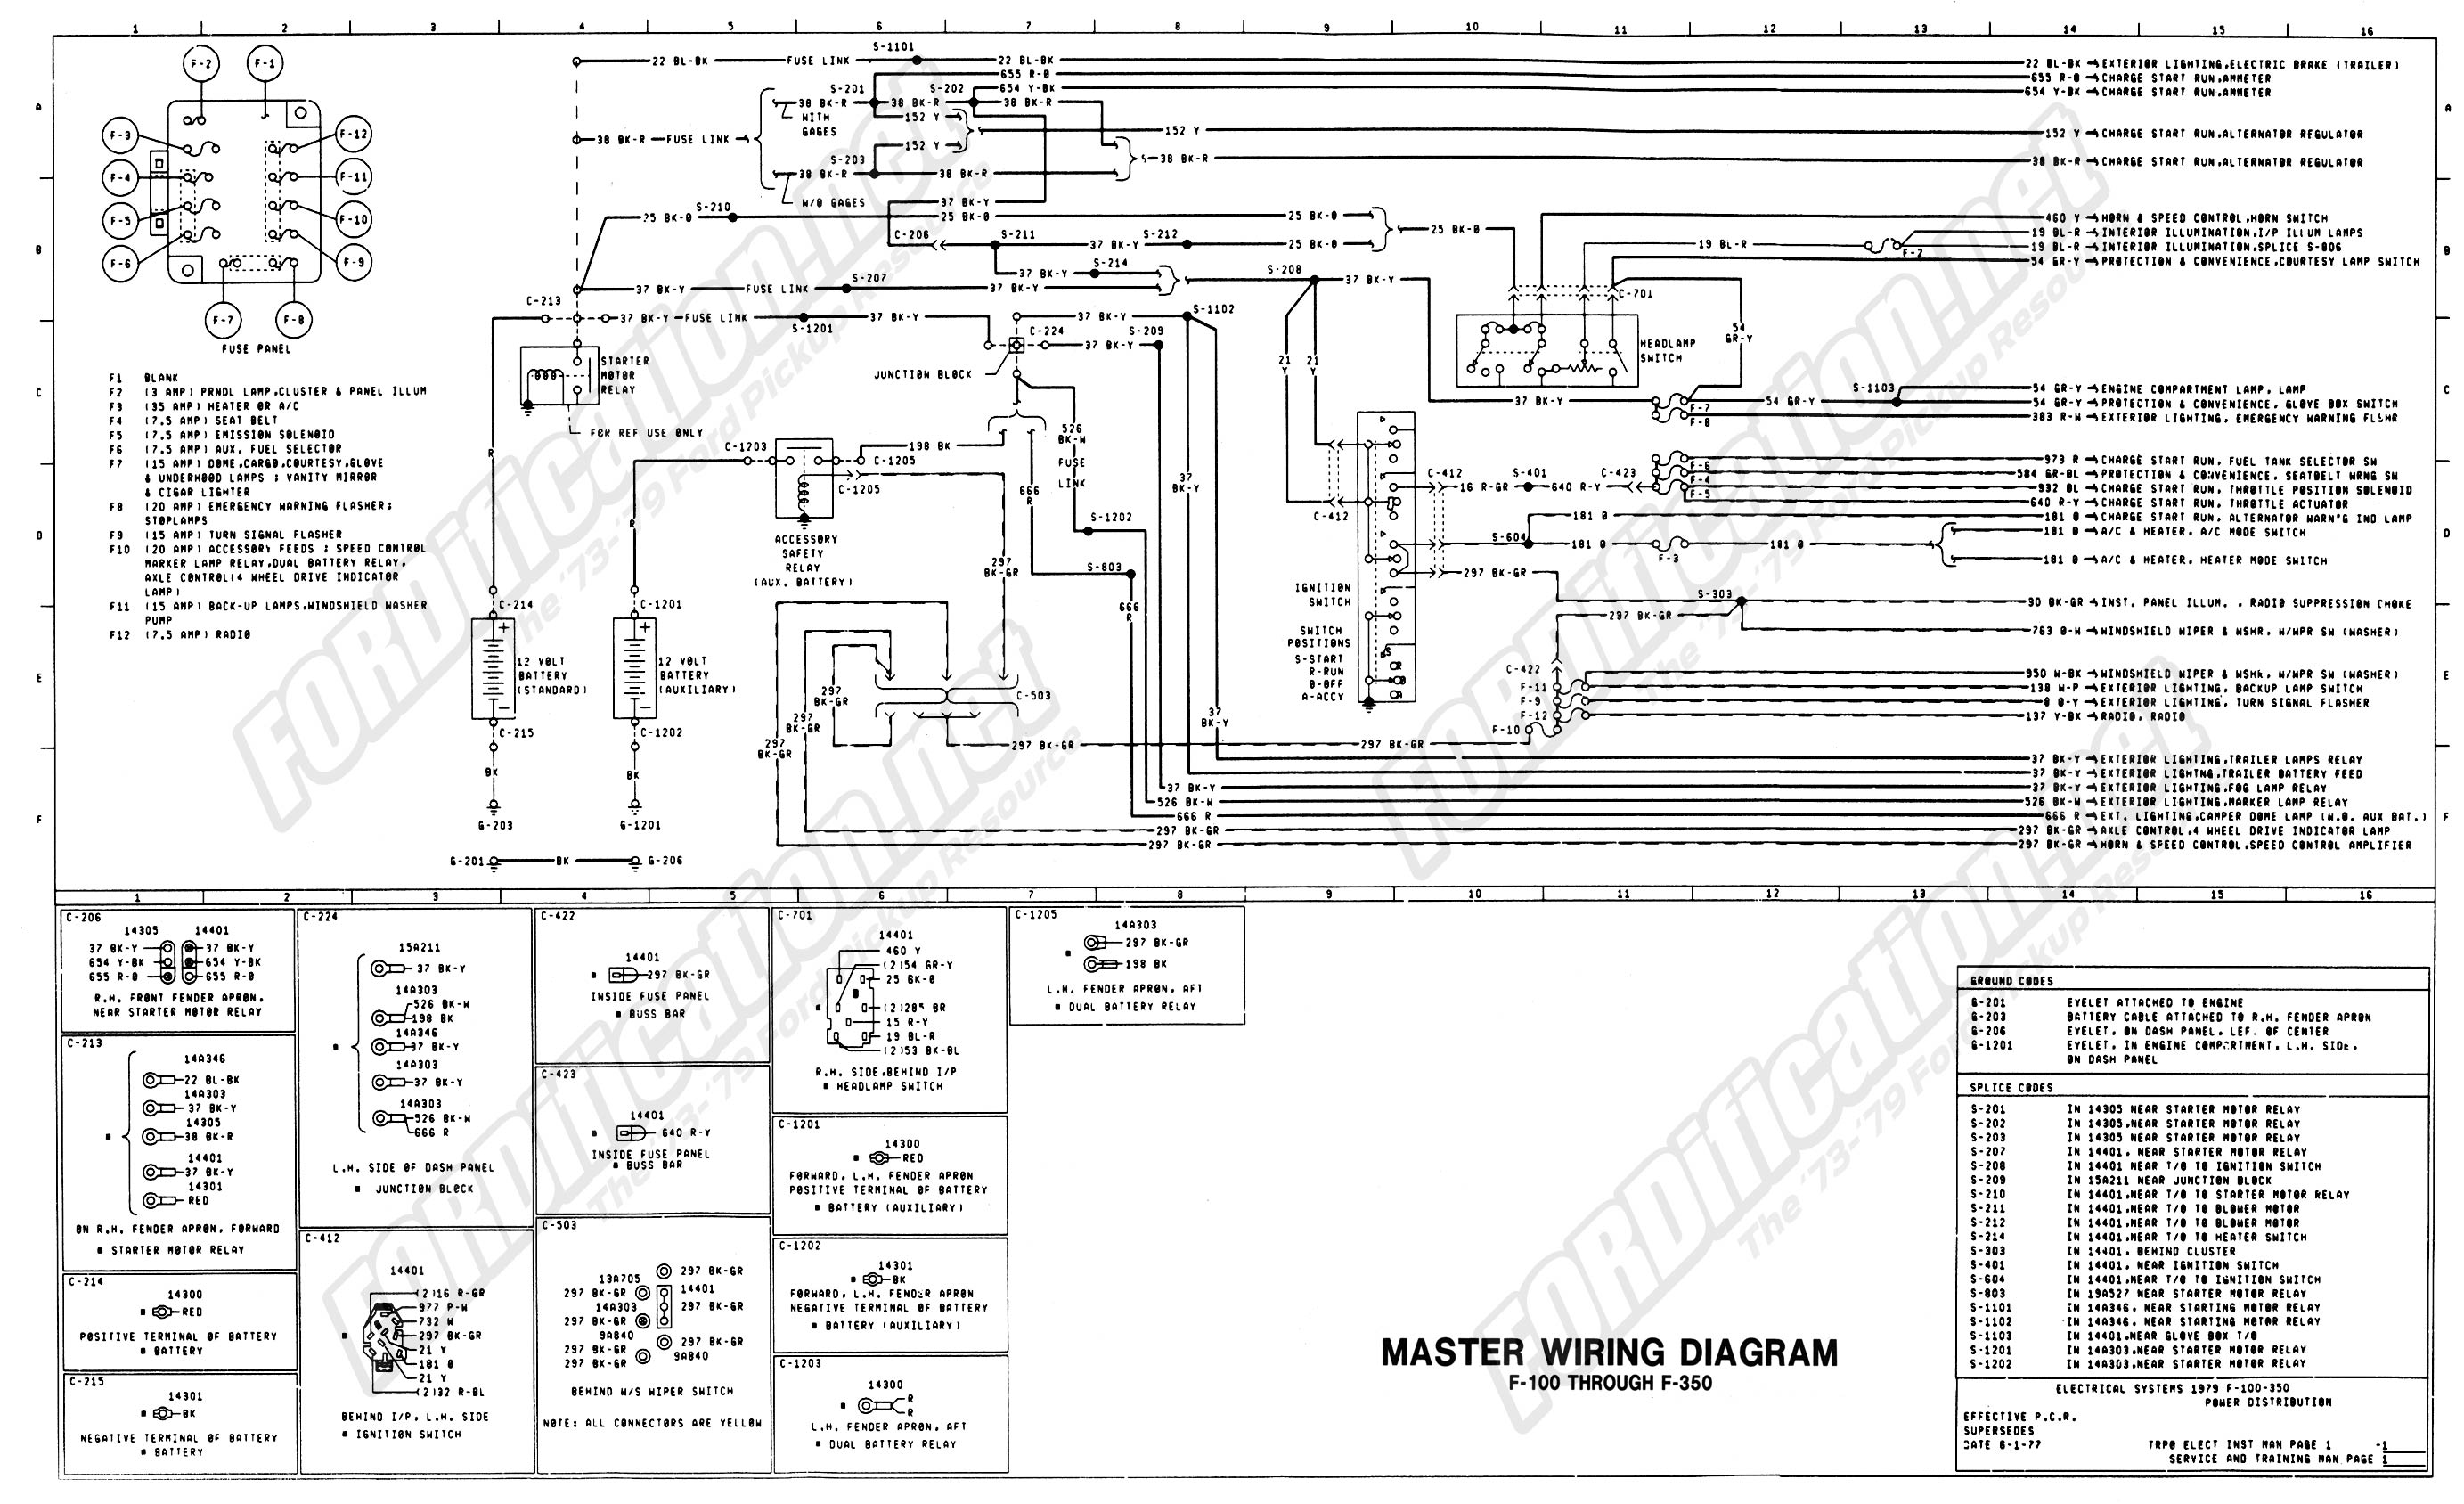 wiring_79master_1of9 1973 1979 ford truck wiring diagrams & schematics fordification net  at soozxer.org